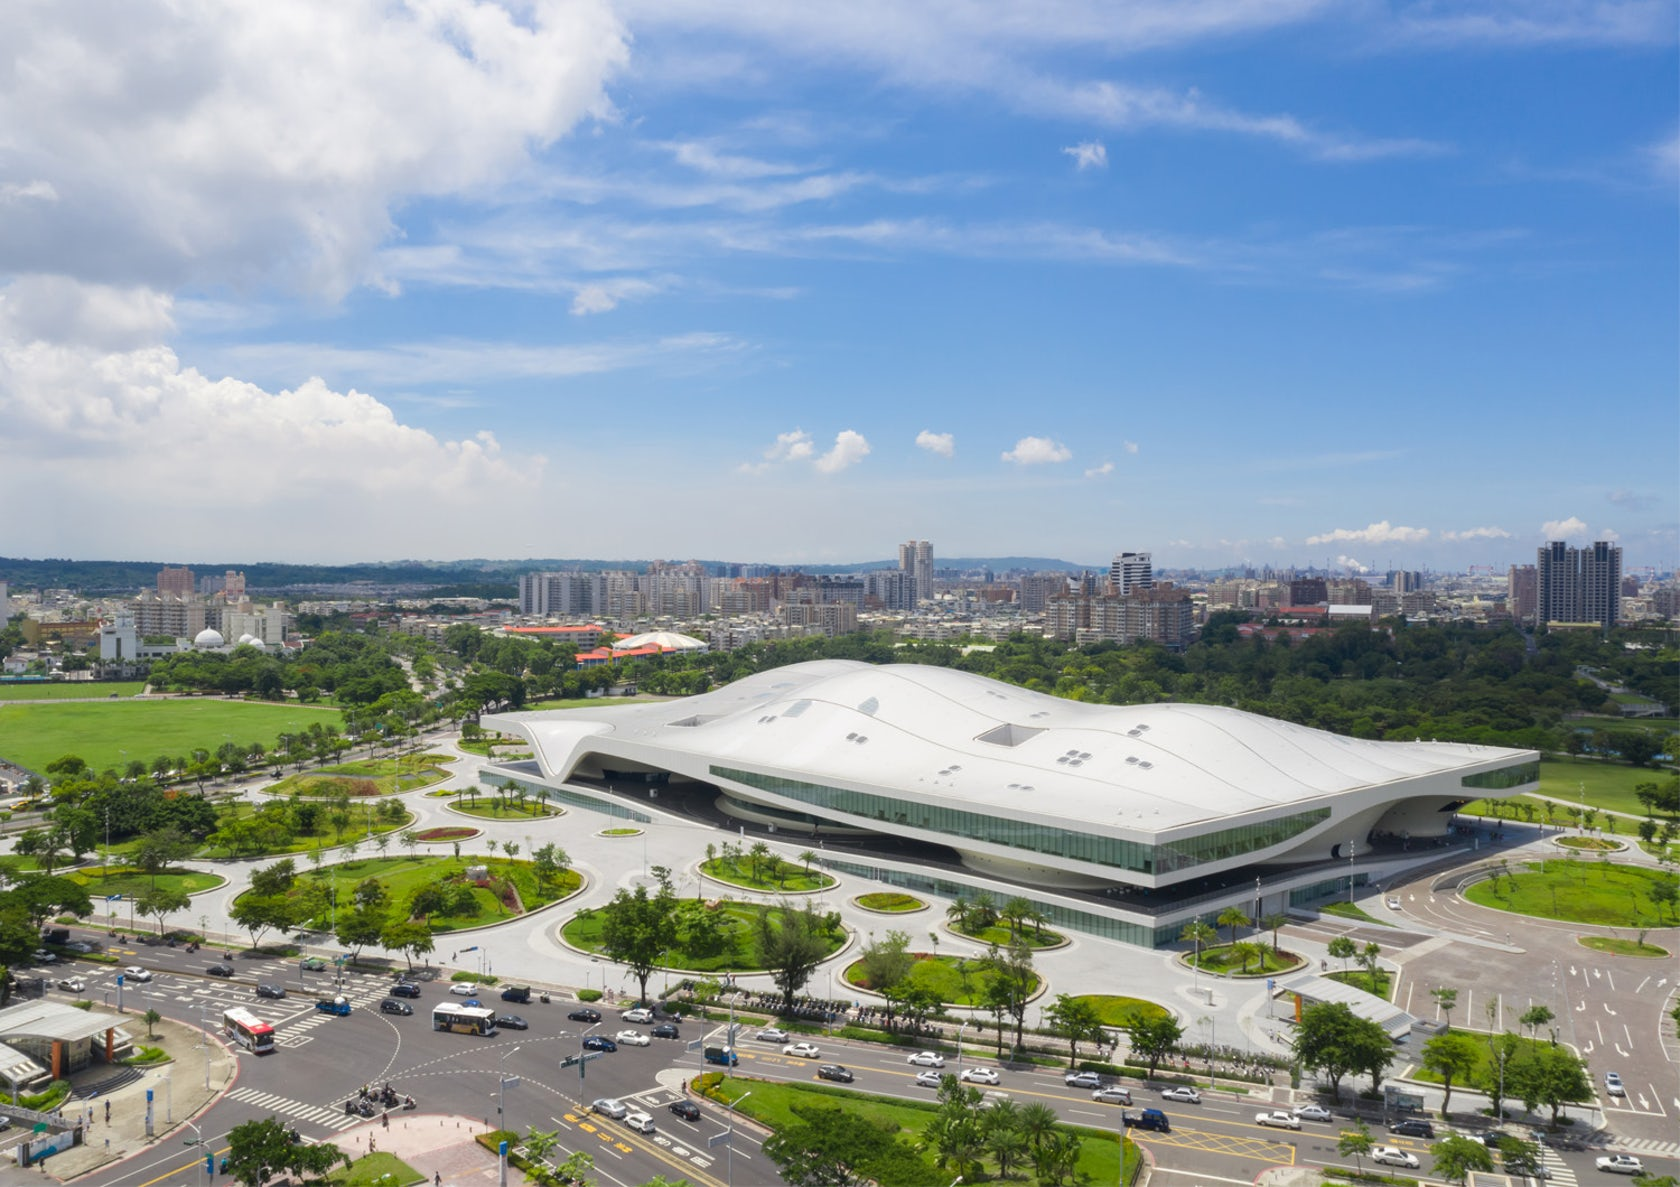 National Kaohsiung Center for the Arts Mecanoo Iwan Baan